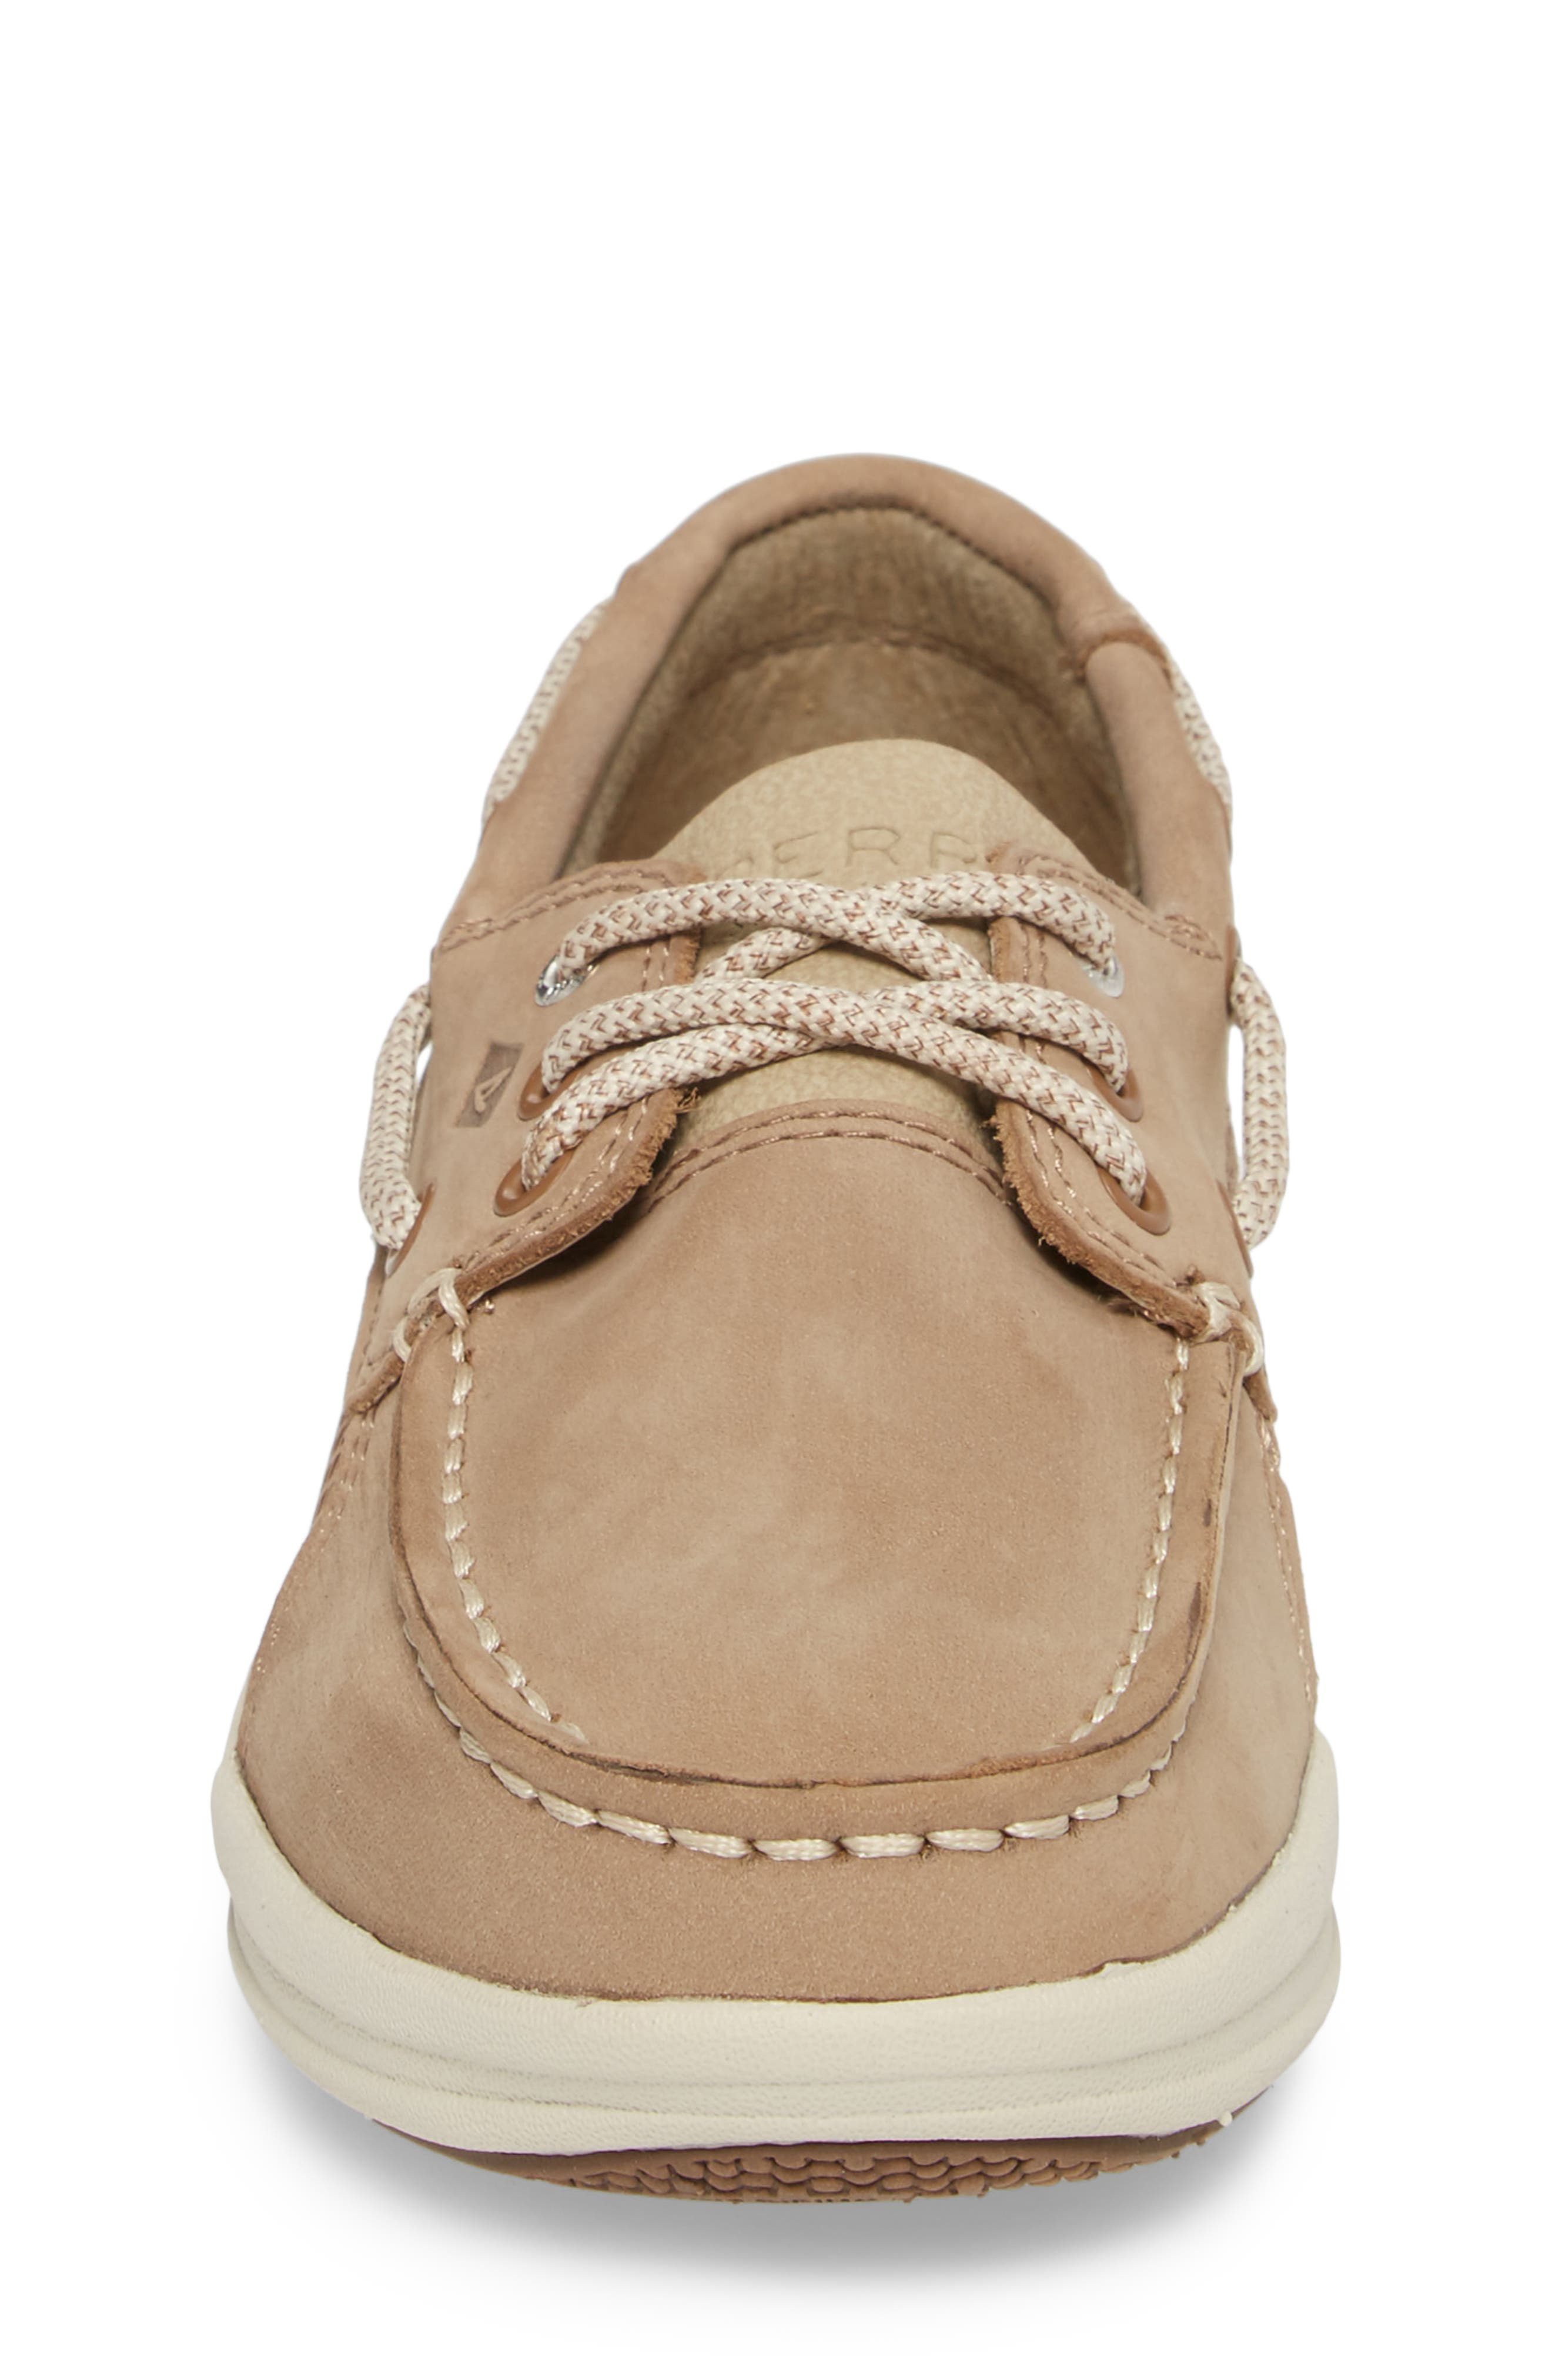 Sperry Gamefish Boat Shoe,                             Alternate thumbnail 4, color,                             Light Tan Leather